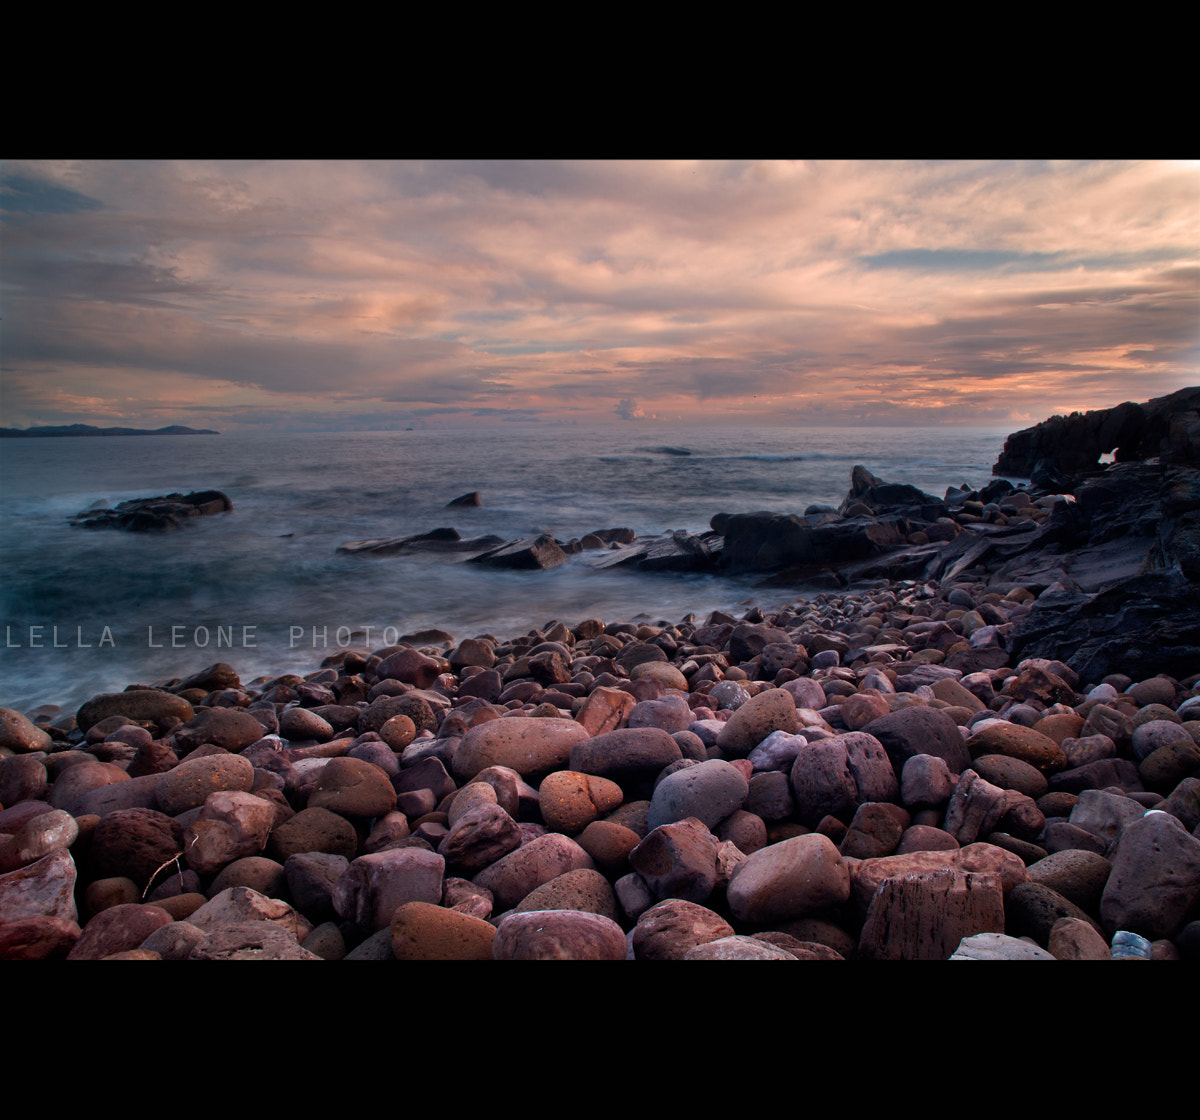 Photograph stones sunset by Mariantonella Leone on 500px